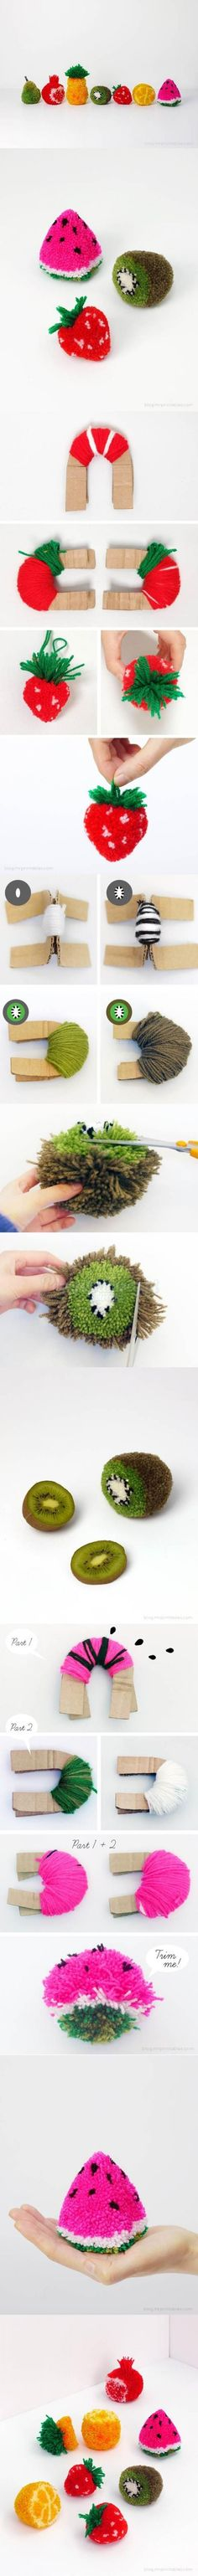 Discover thousands of images about DIY : pompons en forme de fruits. Cute Crafts, Crafts To Do, Yarn Crafts, Crafts For Kids, Arts And Crafts, Decor Crafts, Cool Diy Projects, Craft Projects, Craft Ideas